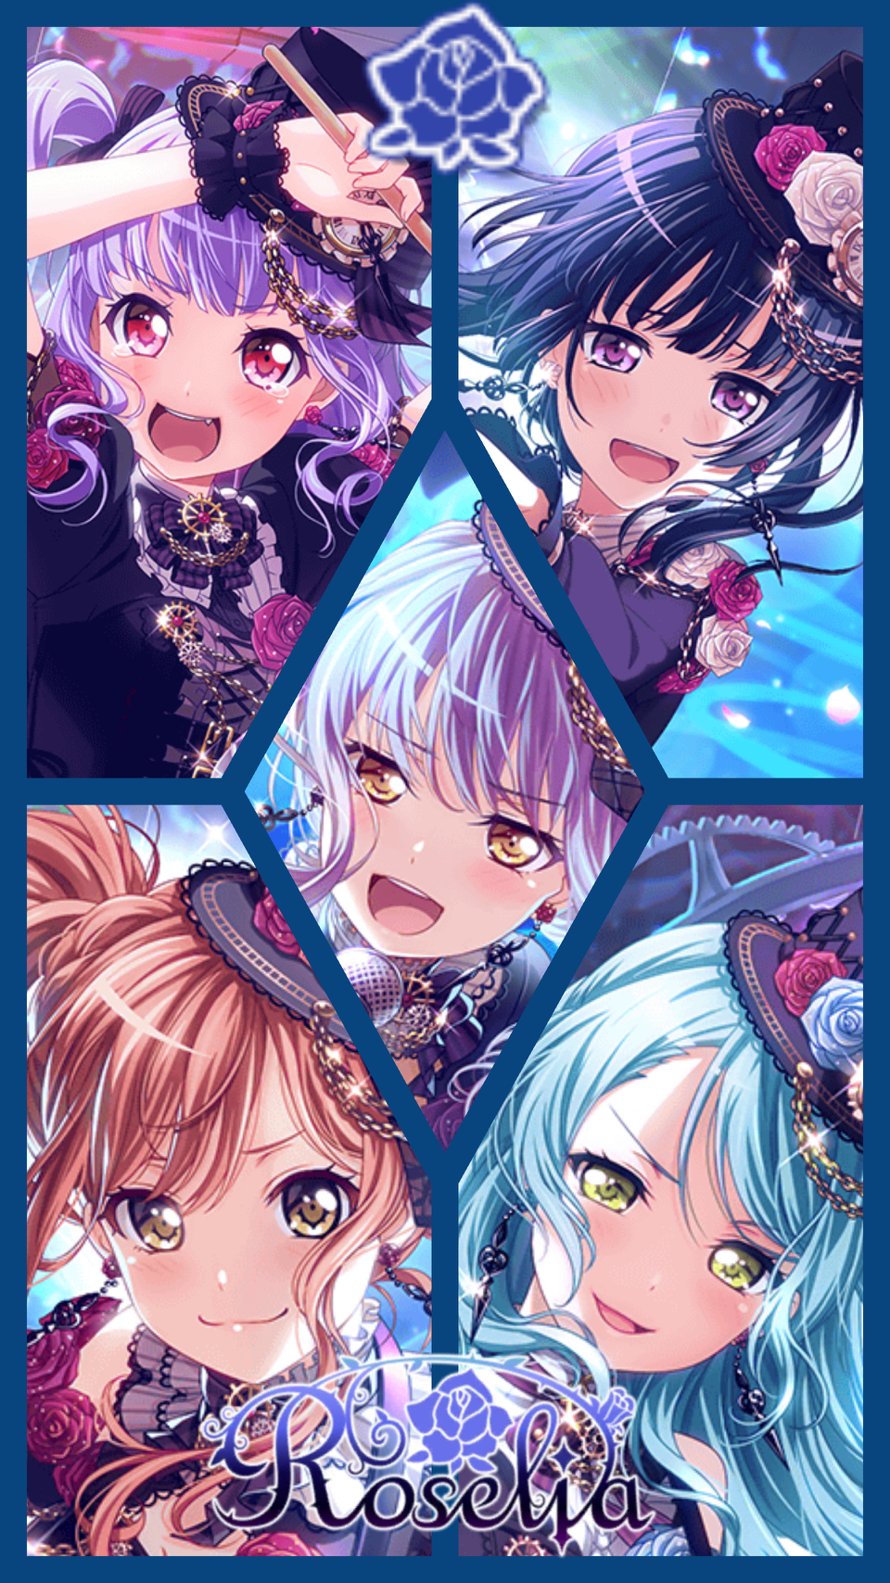 Here is for Roselia ^ ^